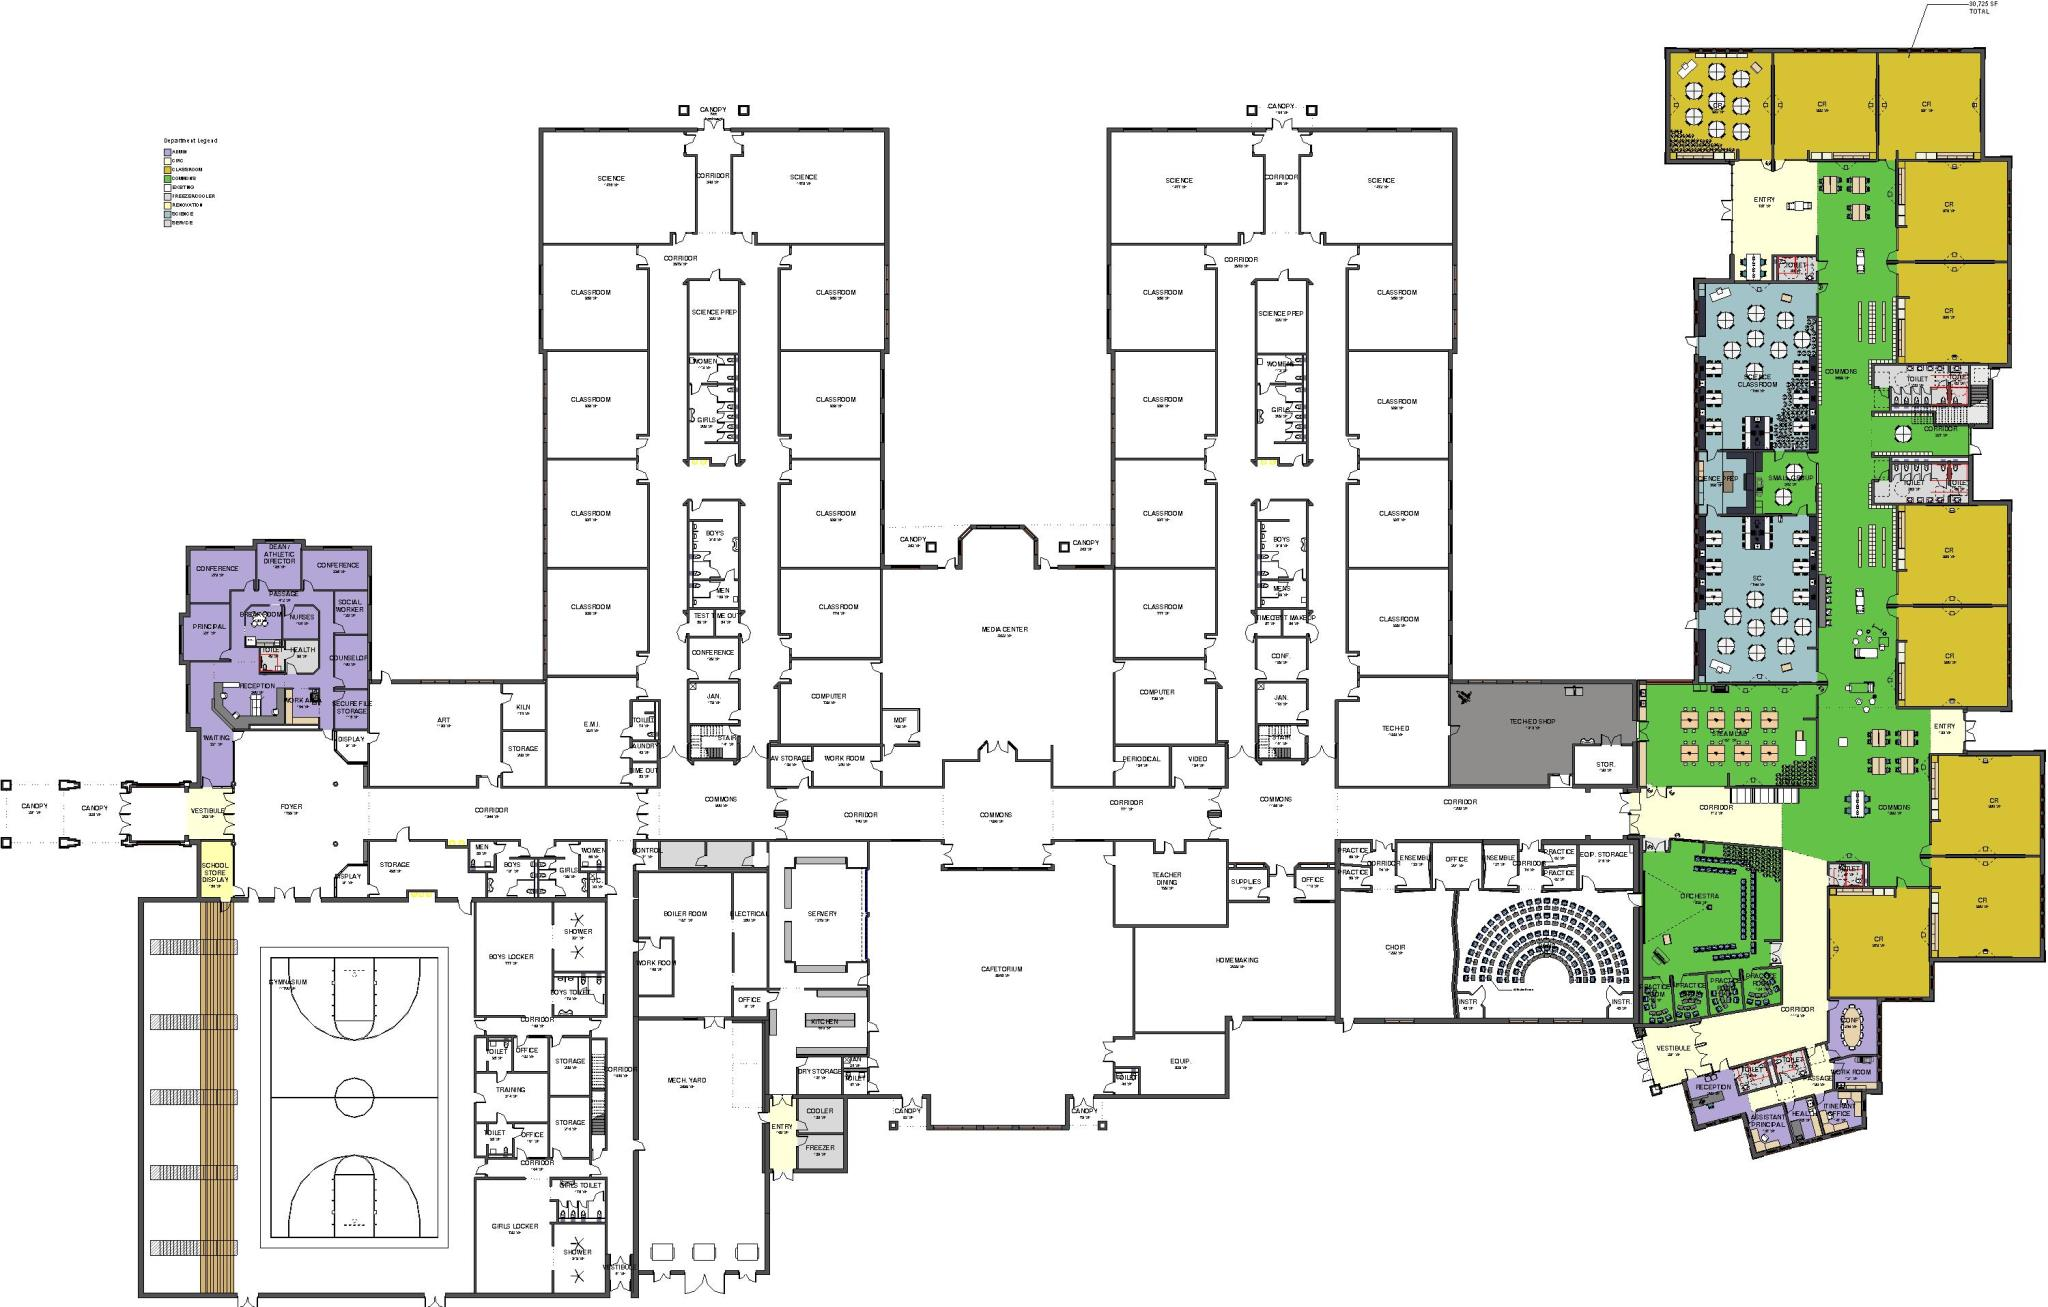 drawing of middle school building layout